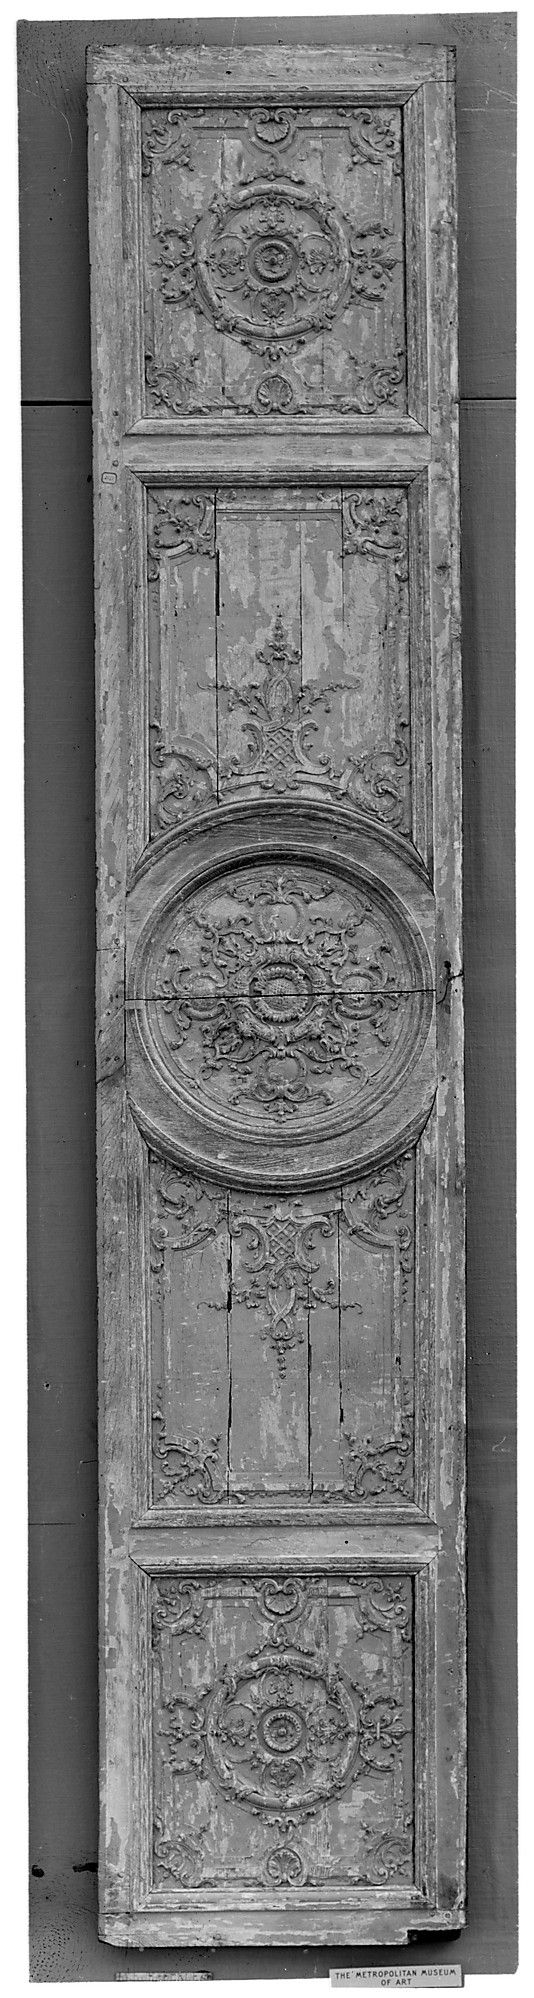 Panel: late 17th-early 18th century - French oak carved and painted gray: